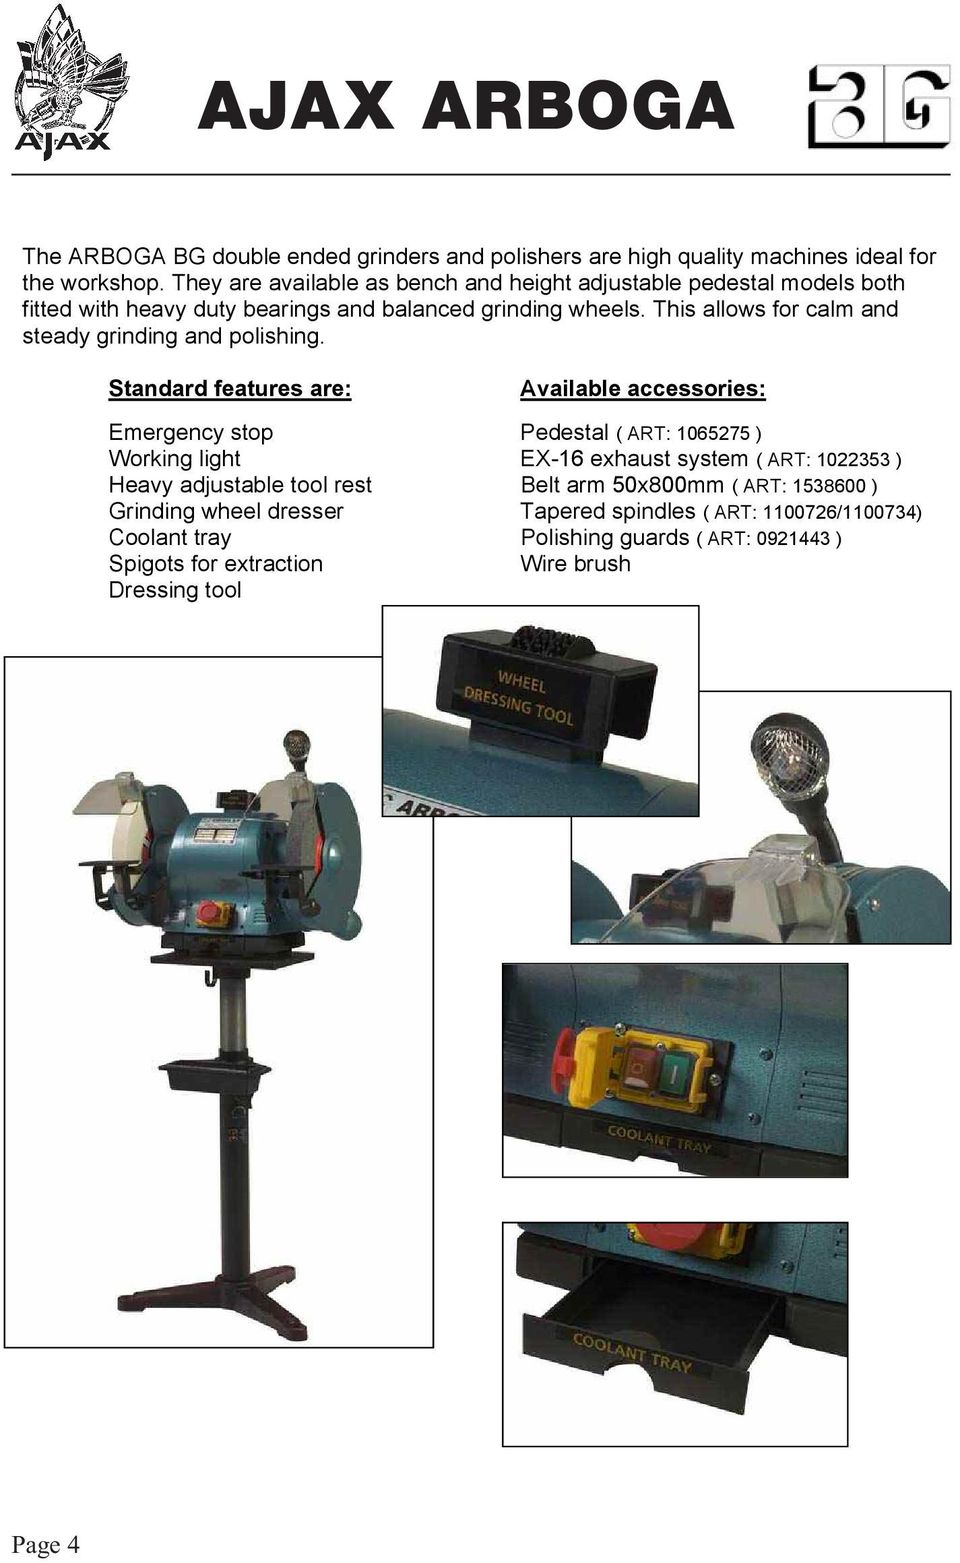 Ajax Arboga Pdf. This Allows For Calm And Steady Grinding Polishing. Wiring. Br Tool Bench Grinder Wiring Diagram At Scoala.co